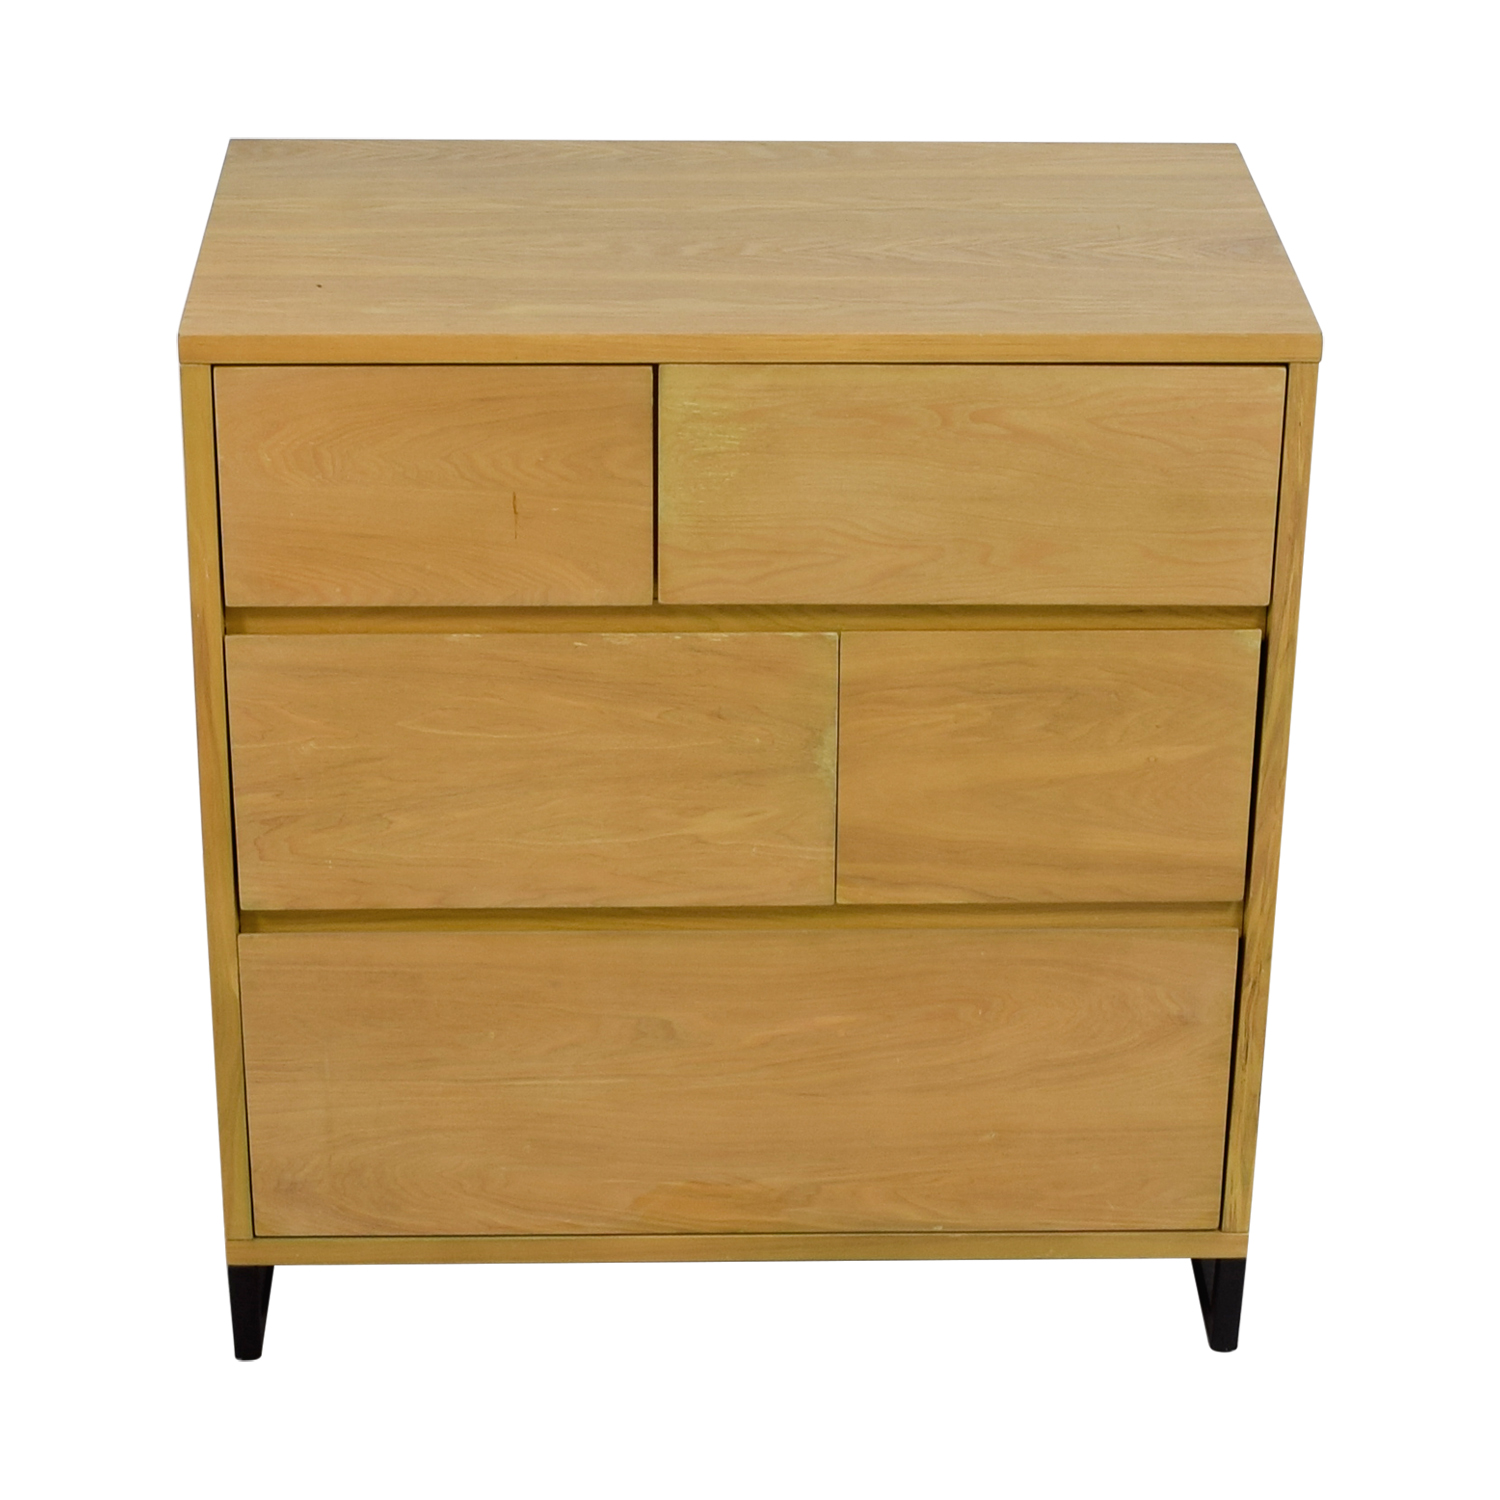 West Elm West Elm Hudson Four-Drawer Dresser